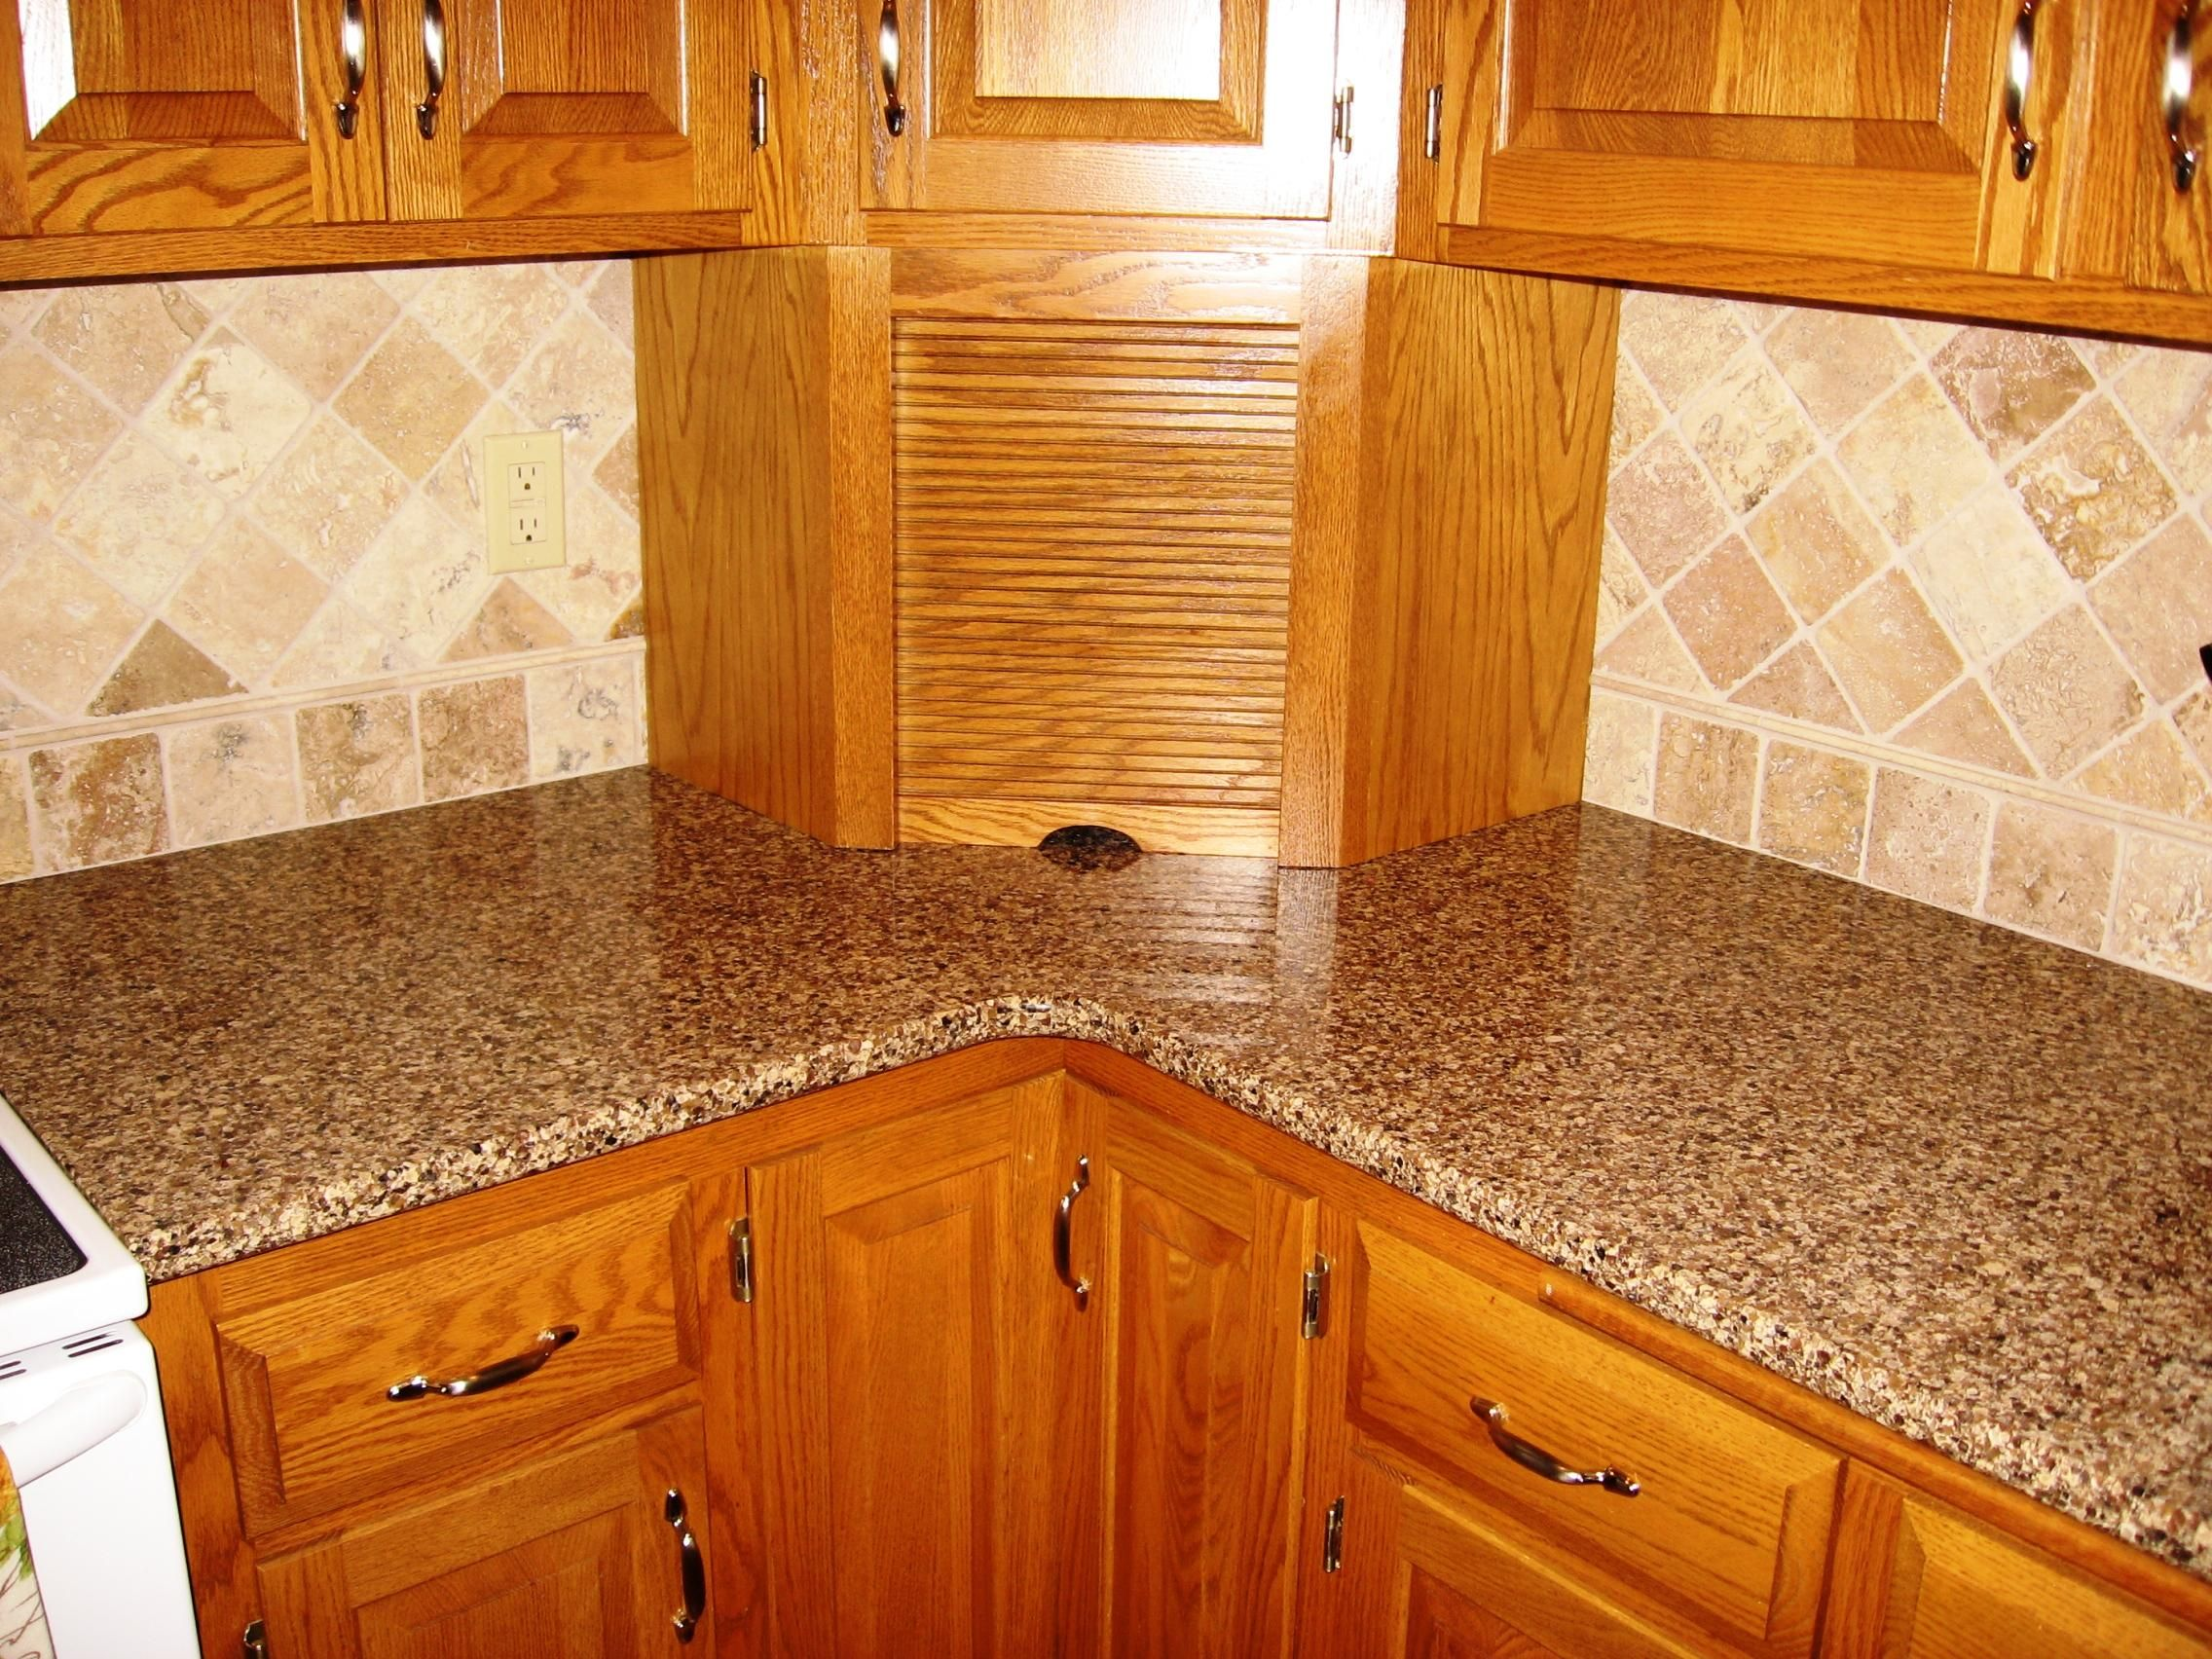 hardwood best kitchen countertops caledonia granite counters in the kitchen Raw Silk Granite Kitchen Countertop